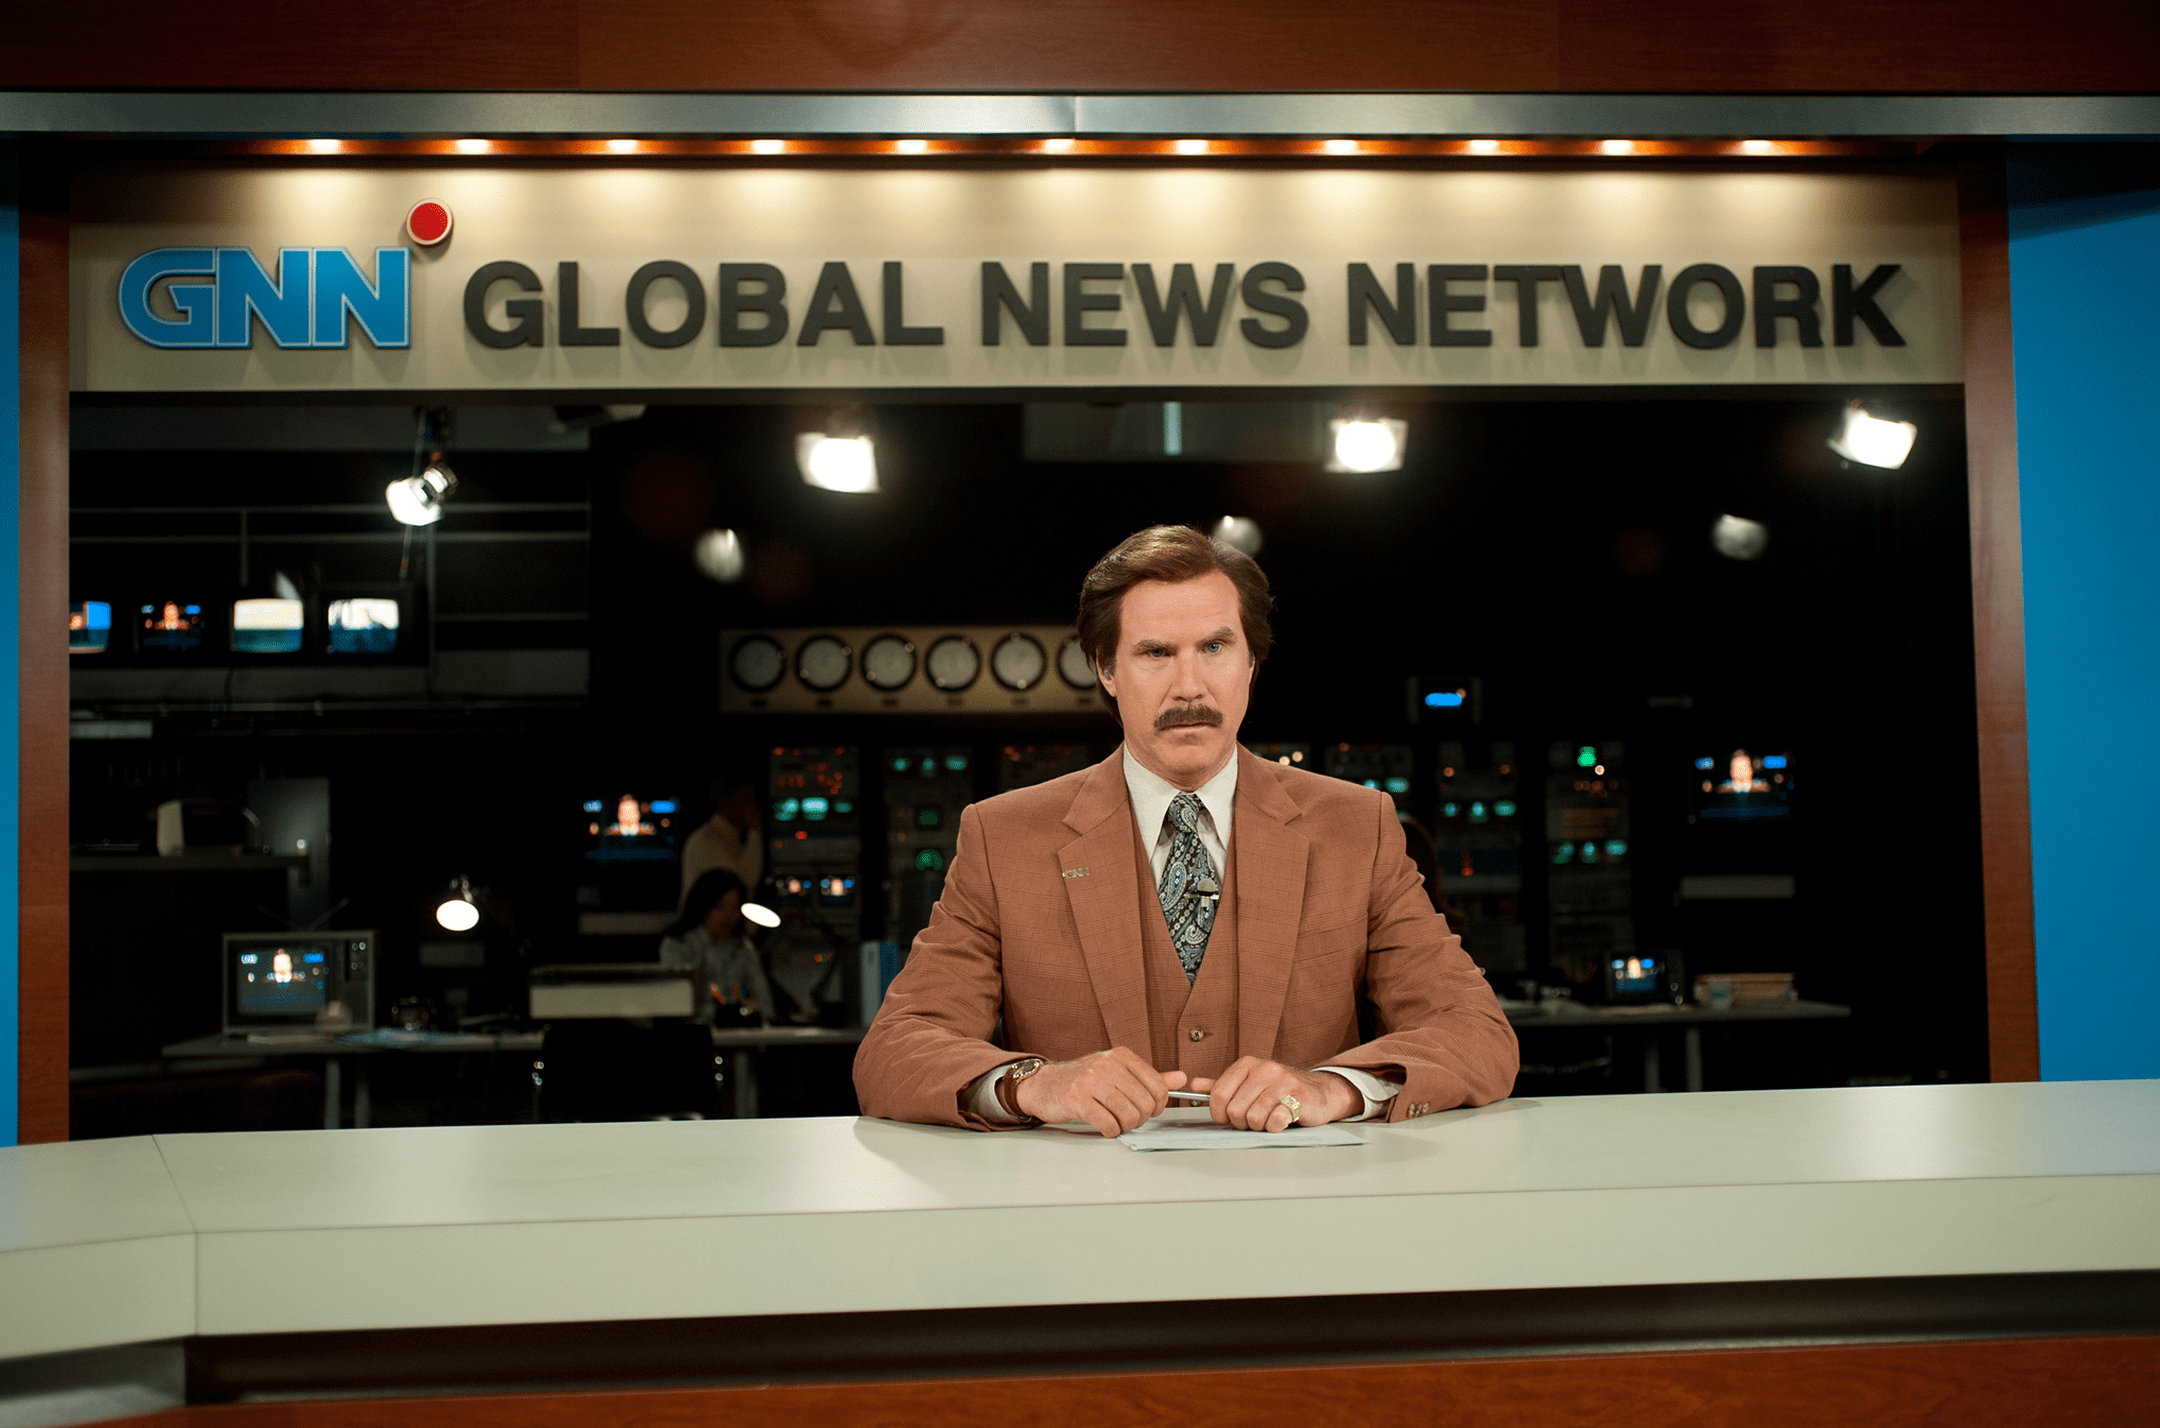 Ron Burgundy (Will Ferrell) is back in Anchorman 2